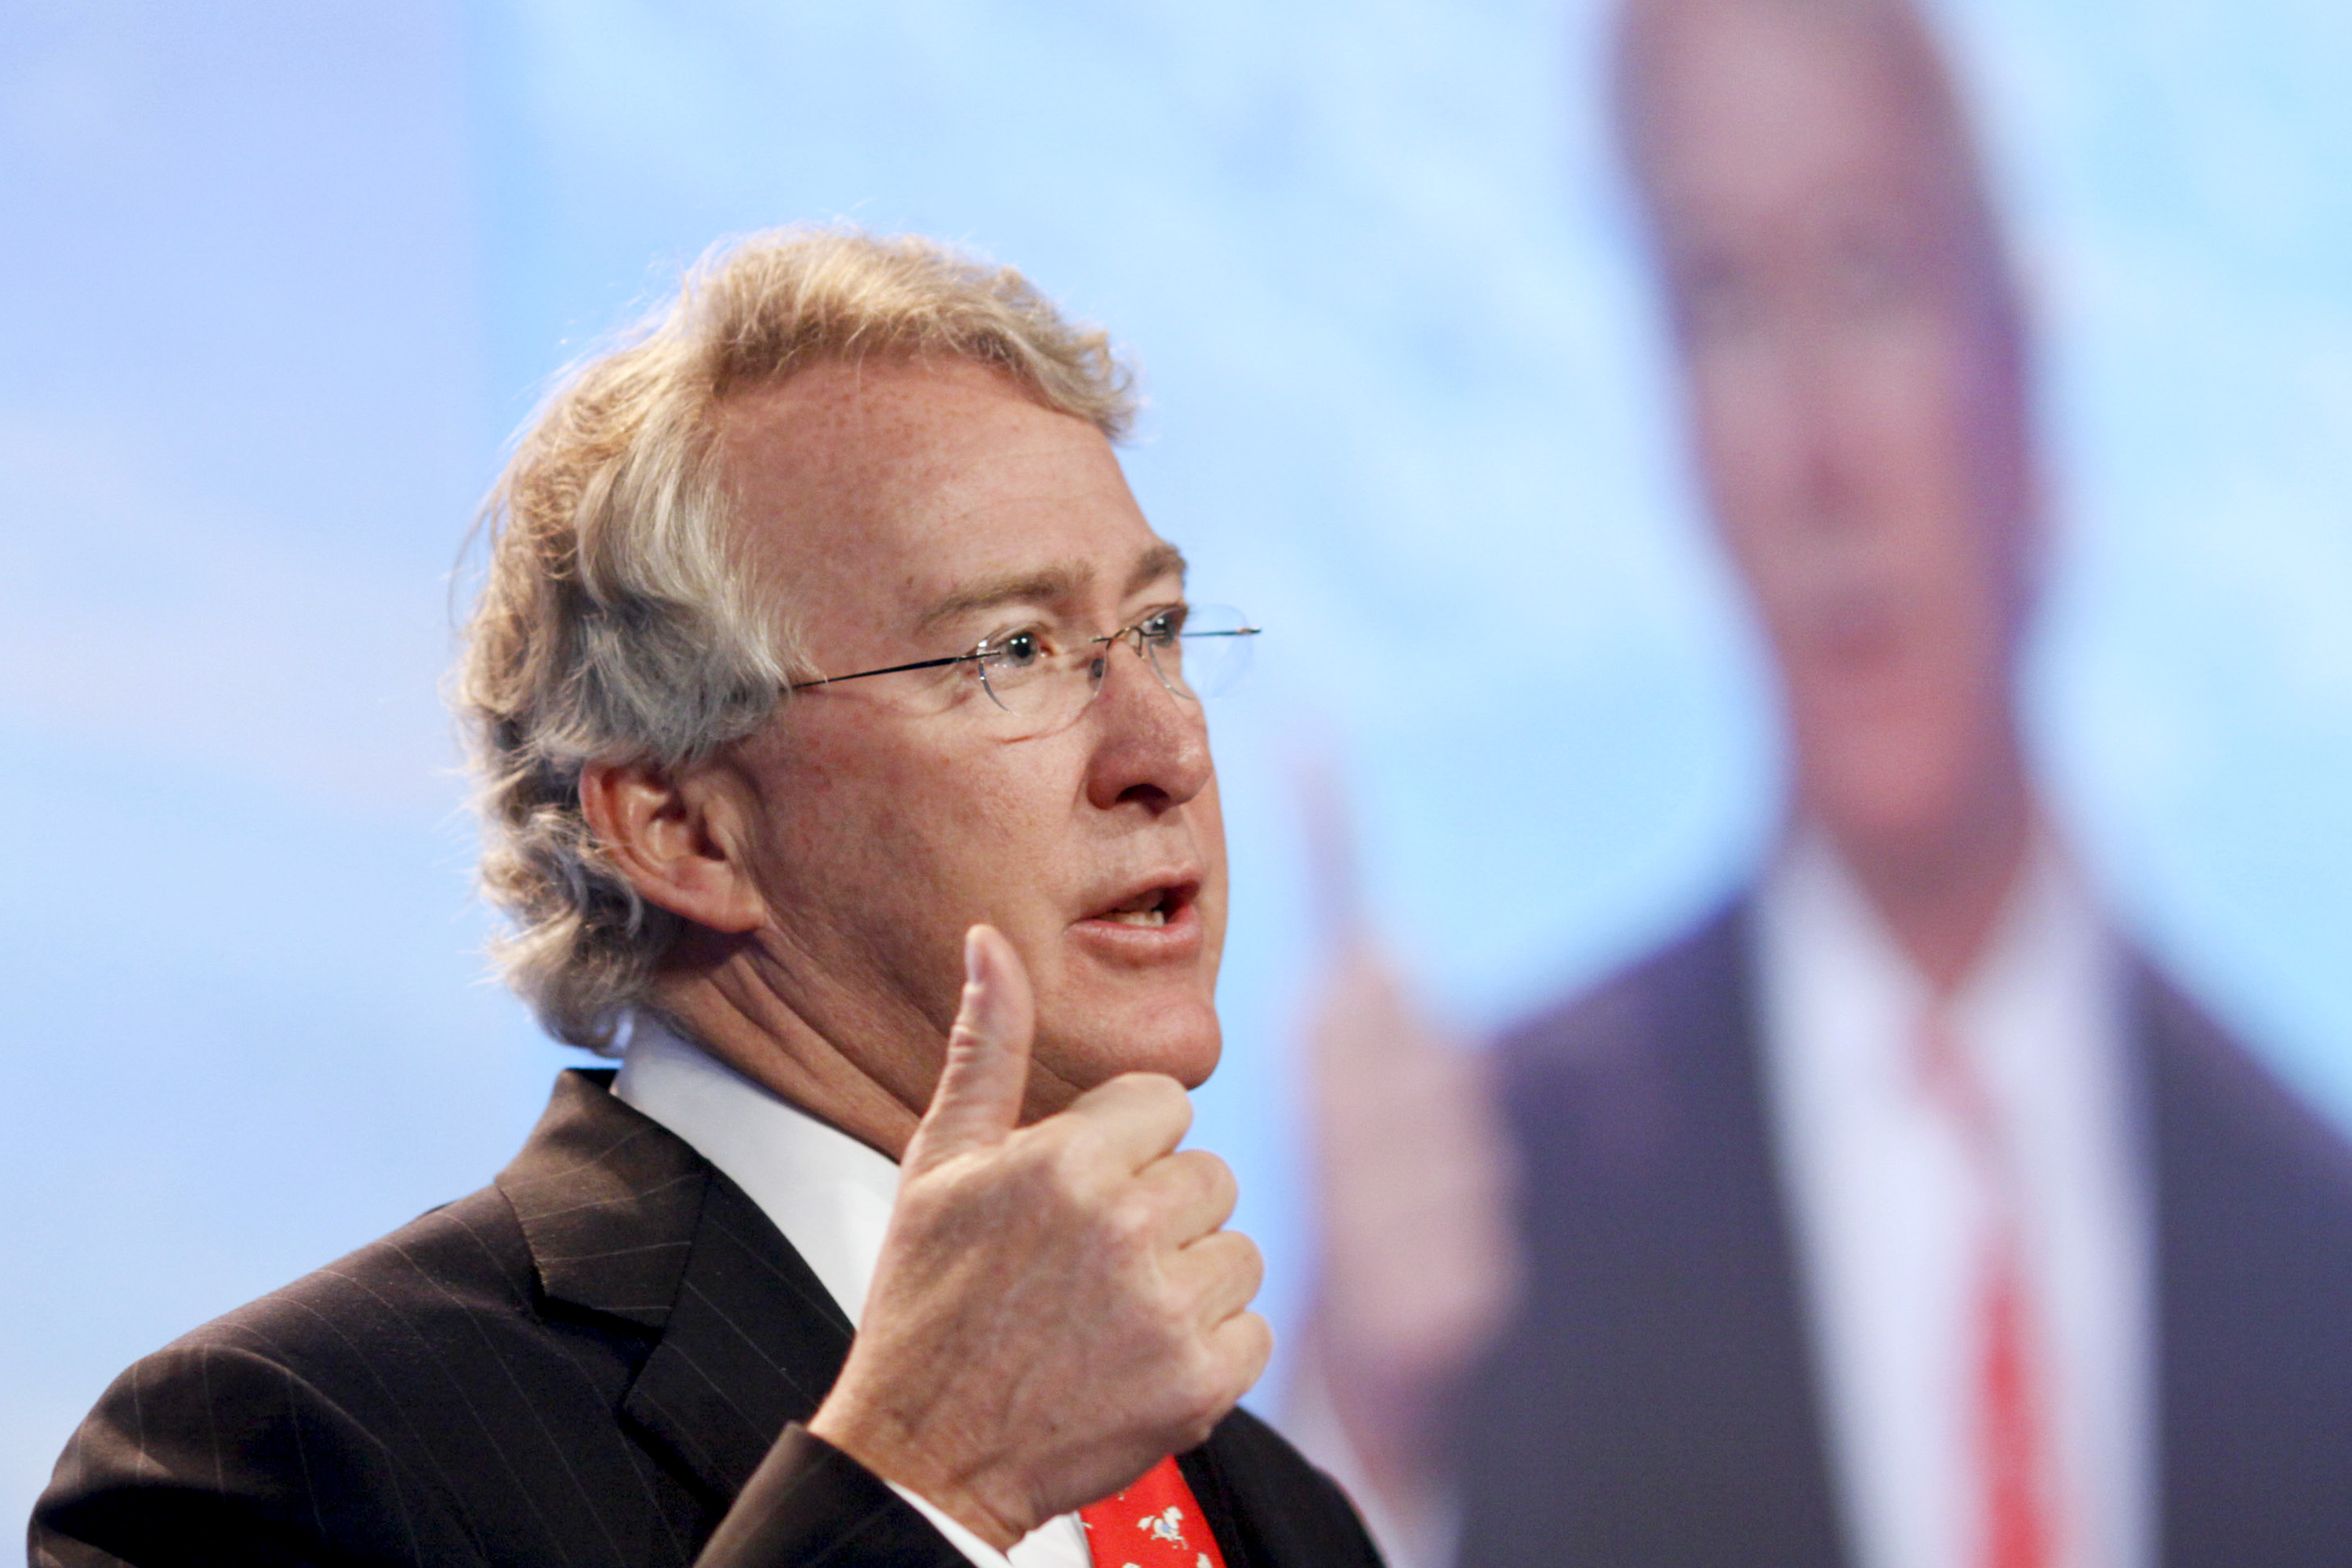 Aubrey McClendon, the former head of Chesapeake Energy, died in a single-car crash in Oklahoma City Wednesday days after the energy titan was indicted by a federal grand jury. Police are investigating and have not ruled out suicide.